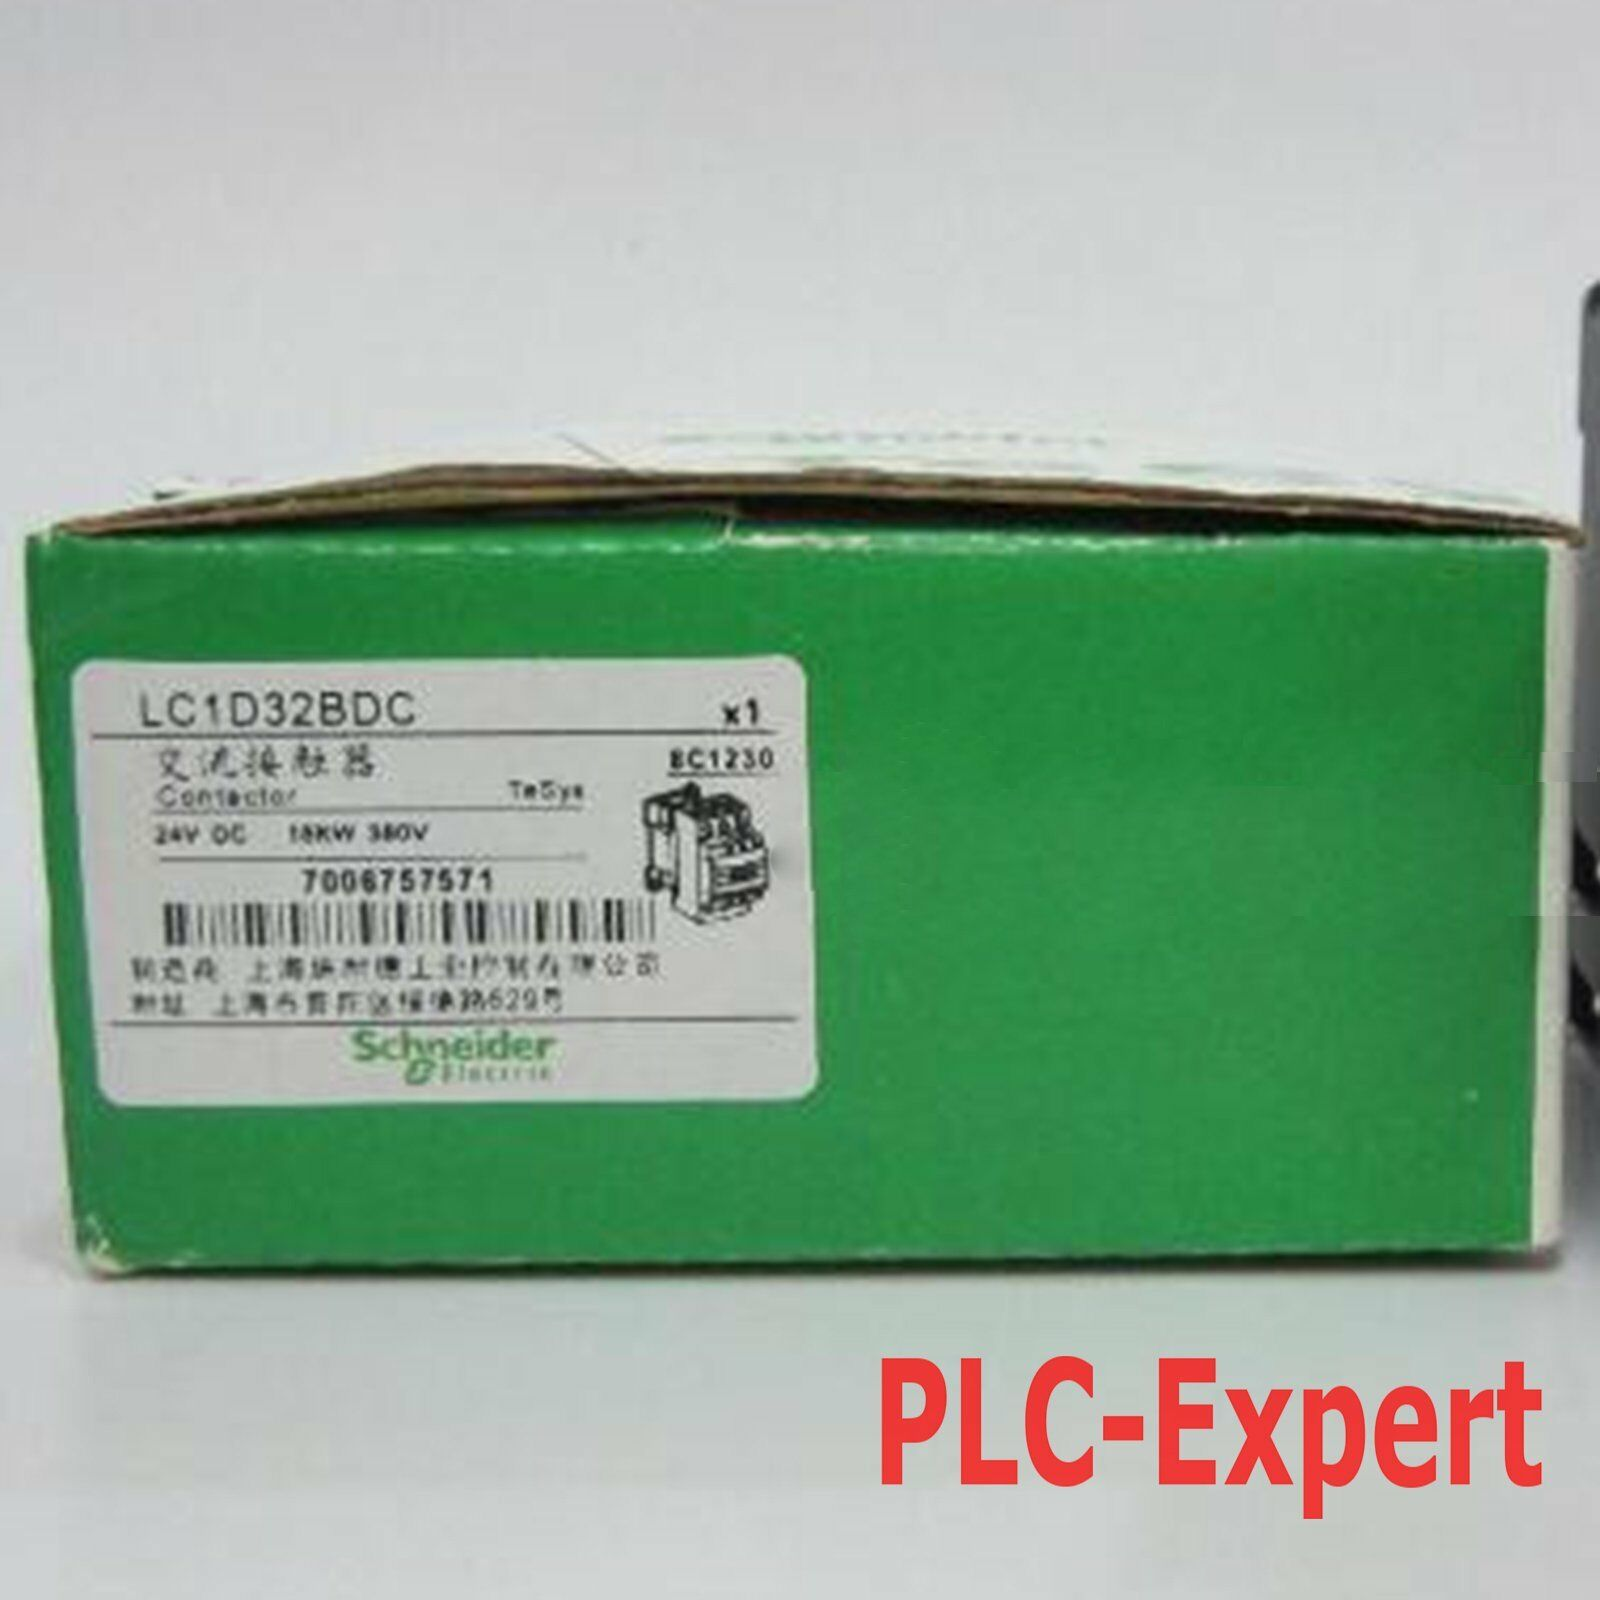 1PC NEW IN BOX Schneider Telemecanique Contactor LC1D32BDC Ship Today